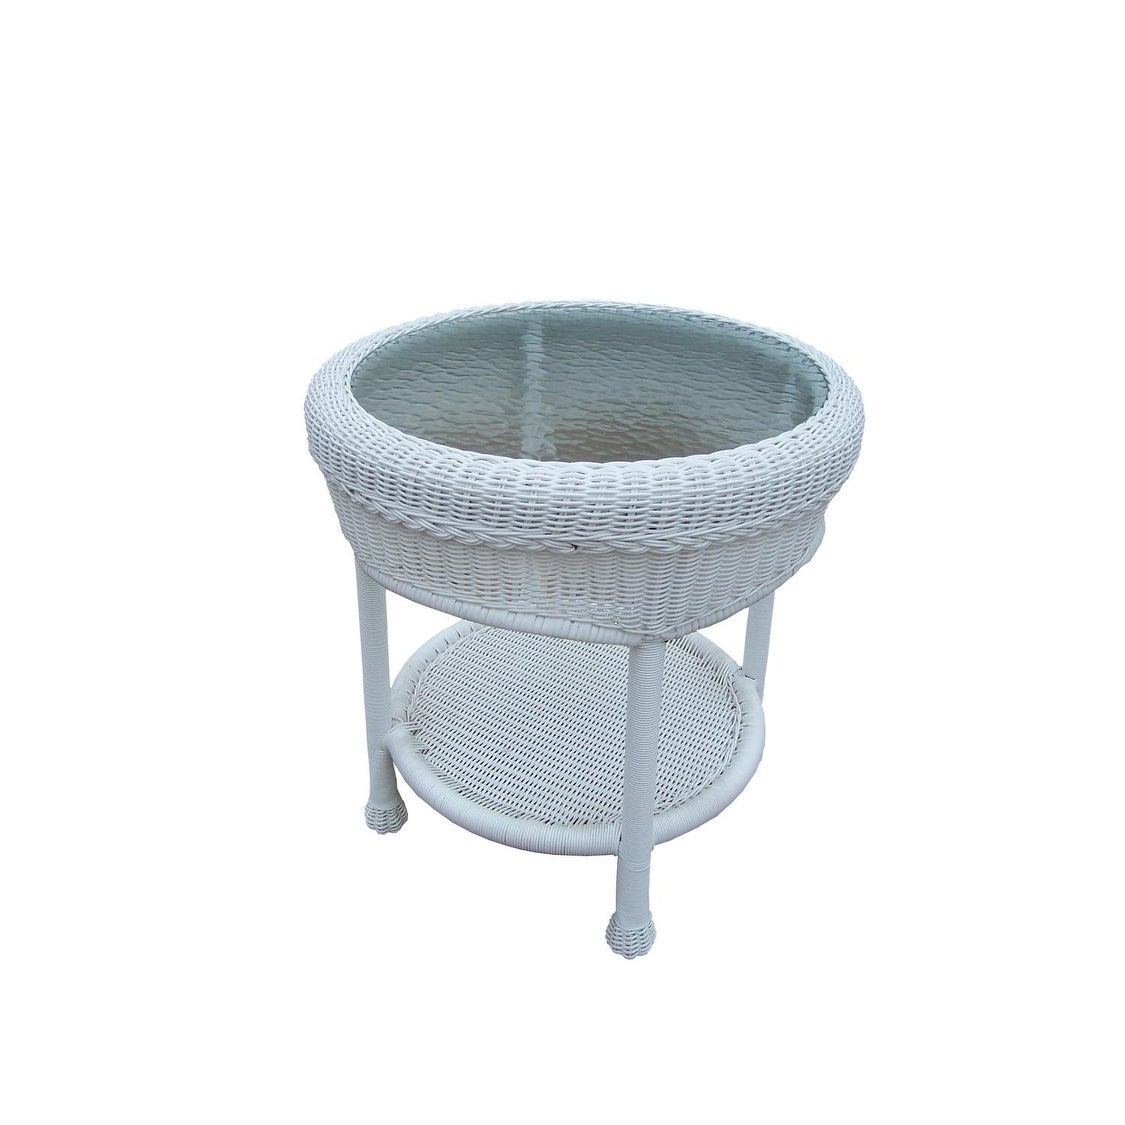 bright white two level resin wicker end table with glass top free shipping today homesense london loveseat vanity lights cappuccino nightstand ameriwood bedside lamps steel pipe